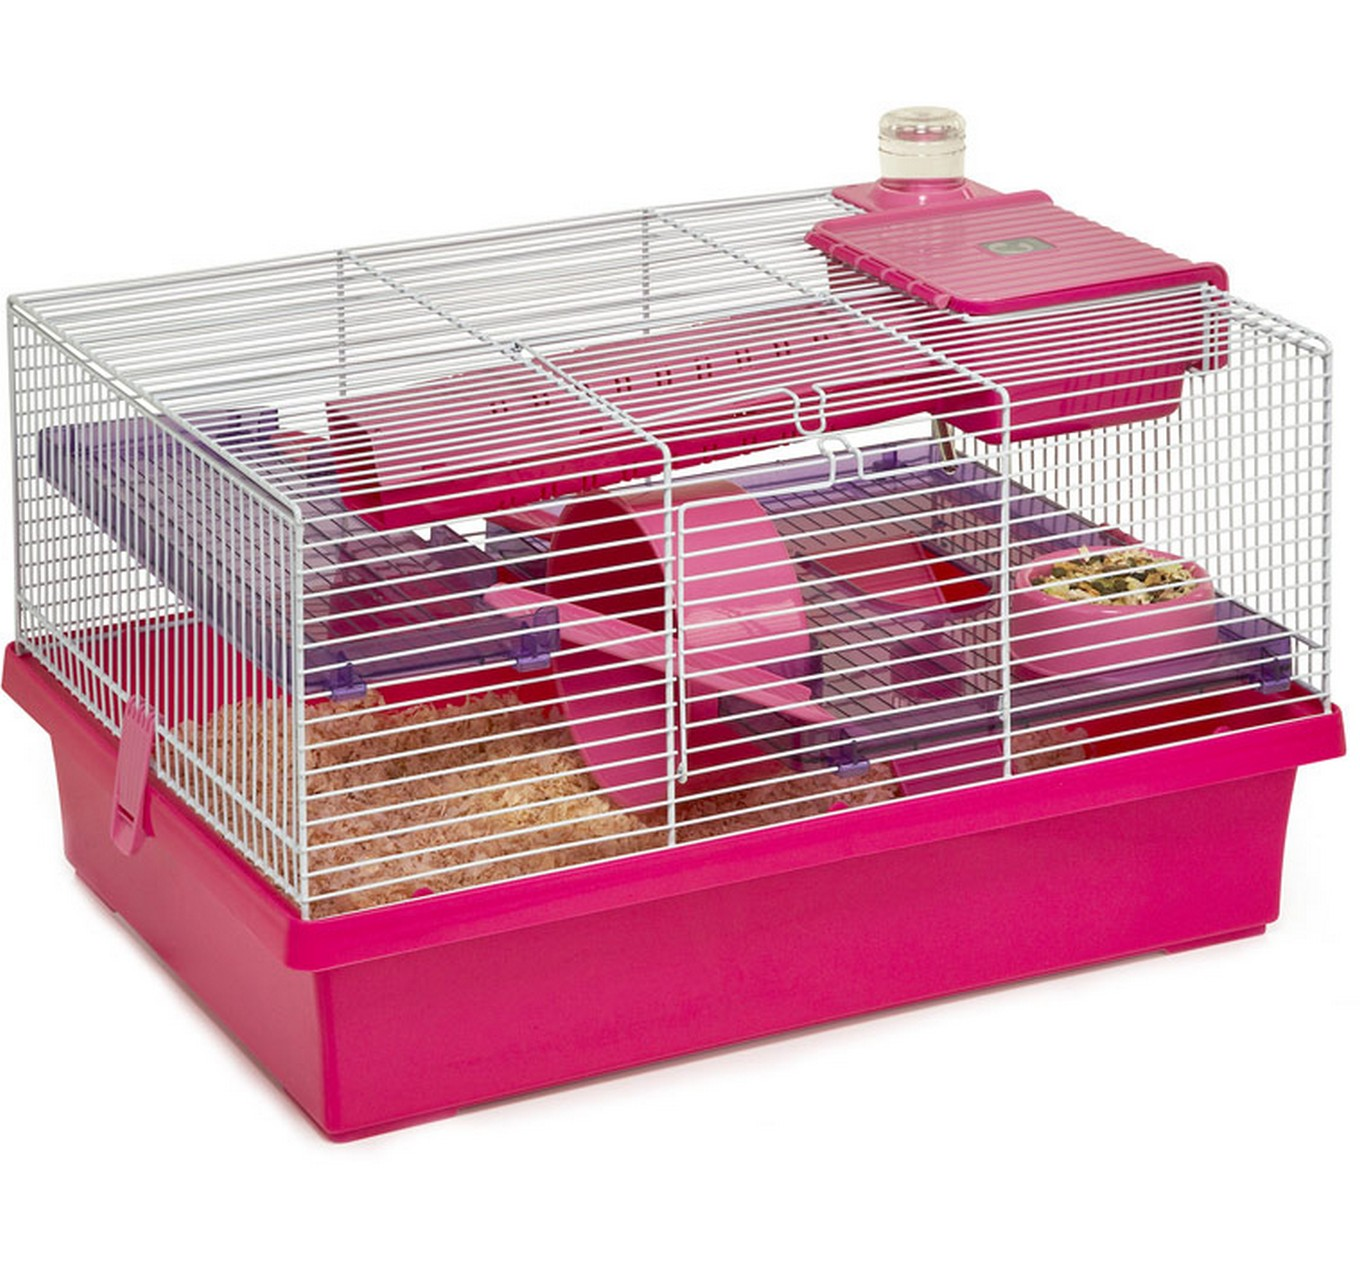 Rosewood Pet Products Pico Hamster Cage Pink Small Animals Tincknell Country Store